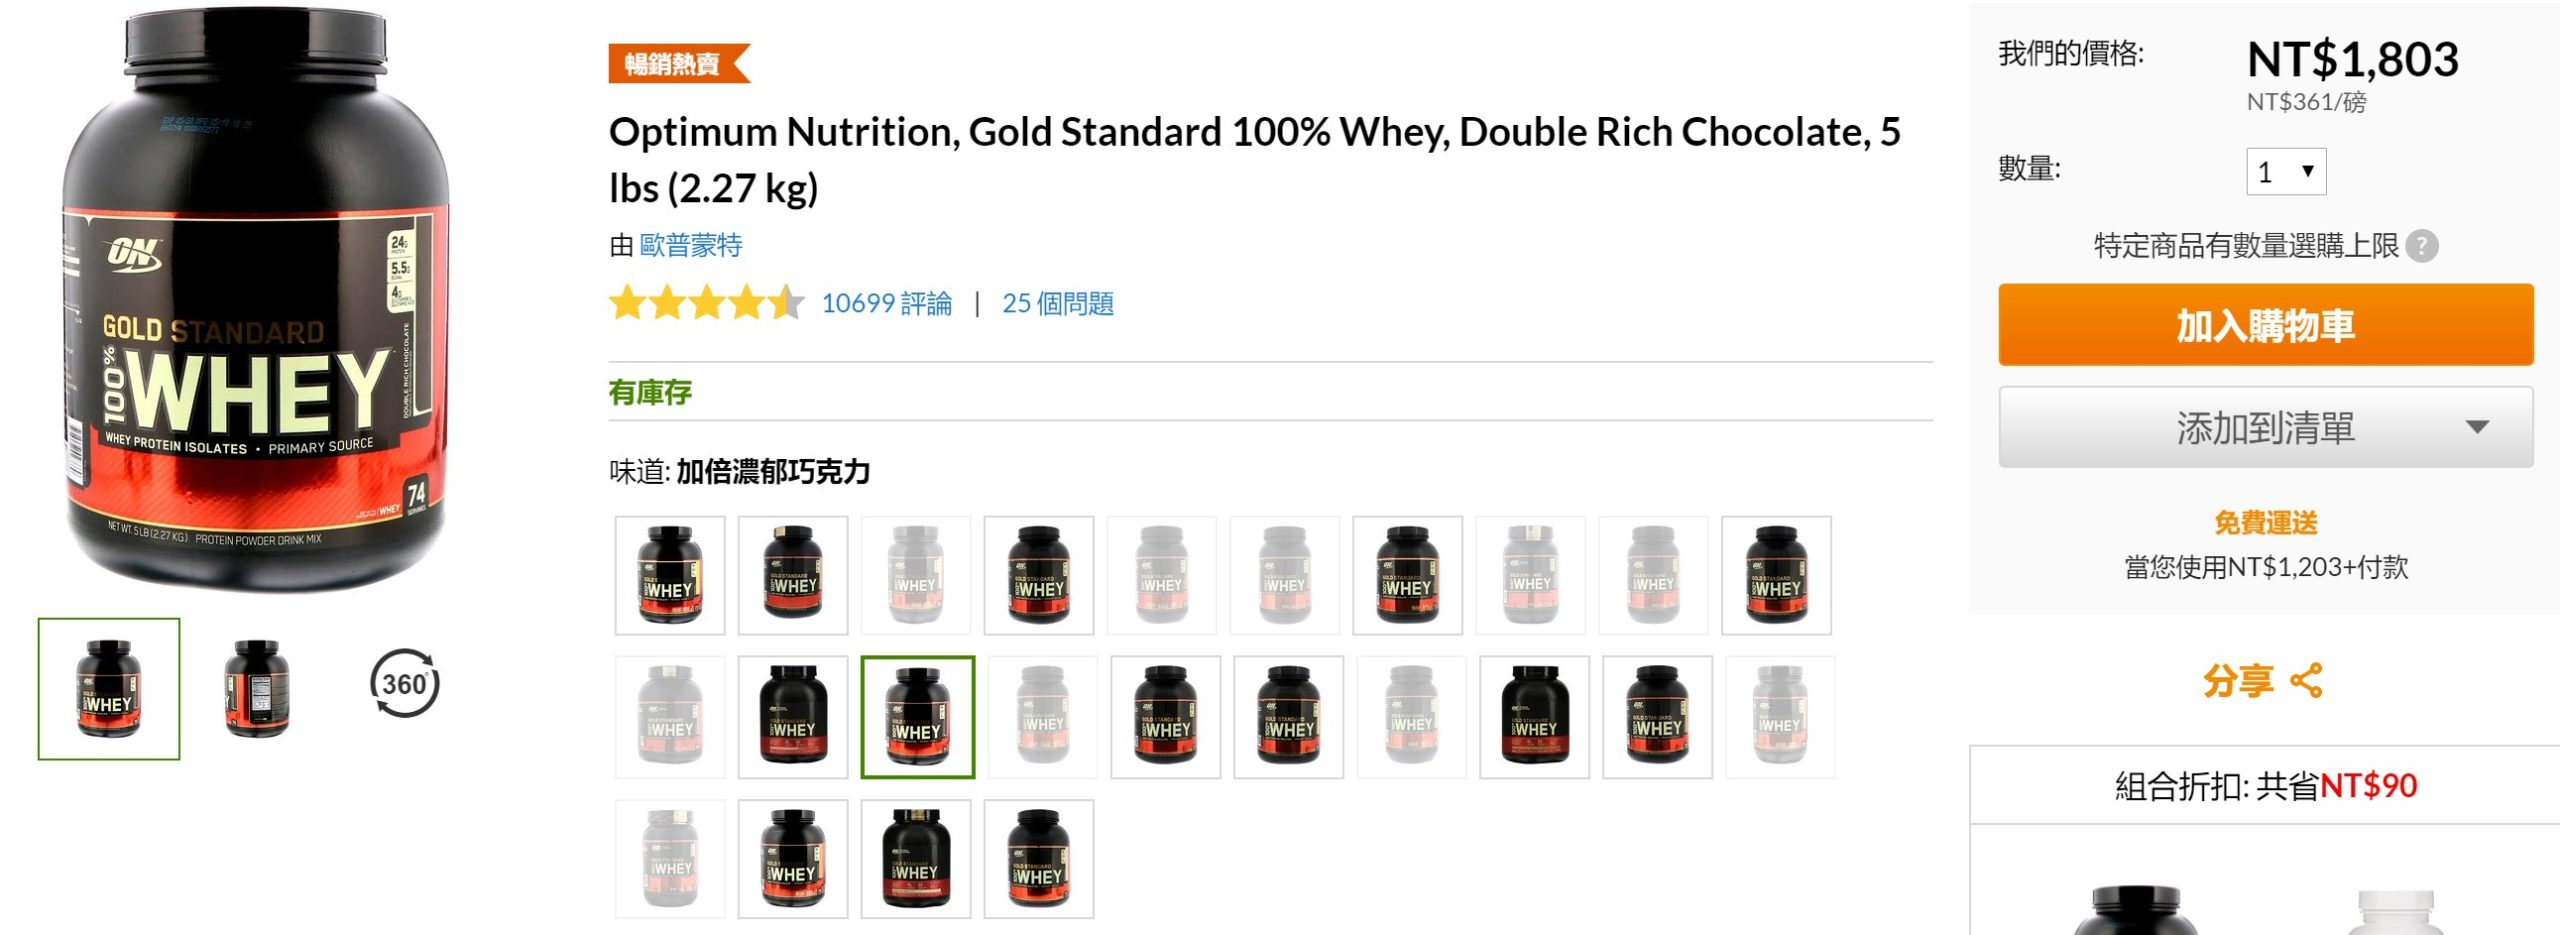 Optimum-Nutrition-Gold-Standard-100-Whey-Double-Rich-Chocolate-5-lbs-2.27-kg